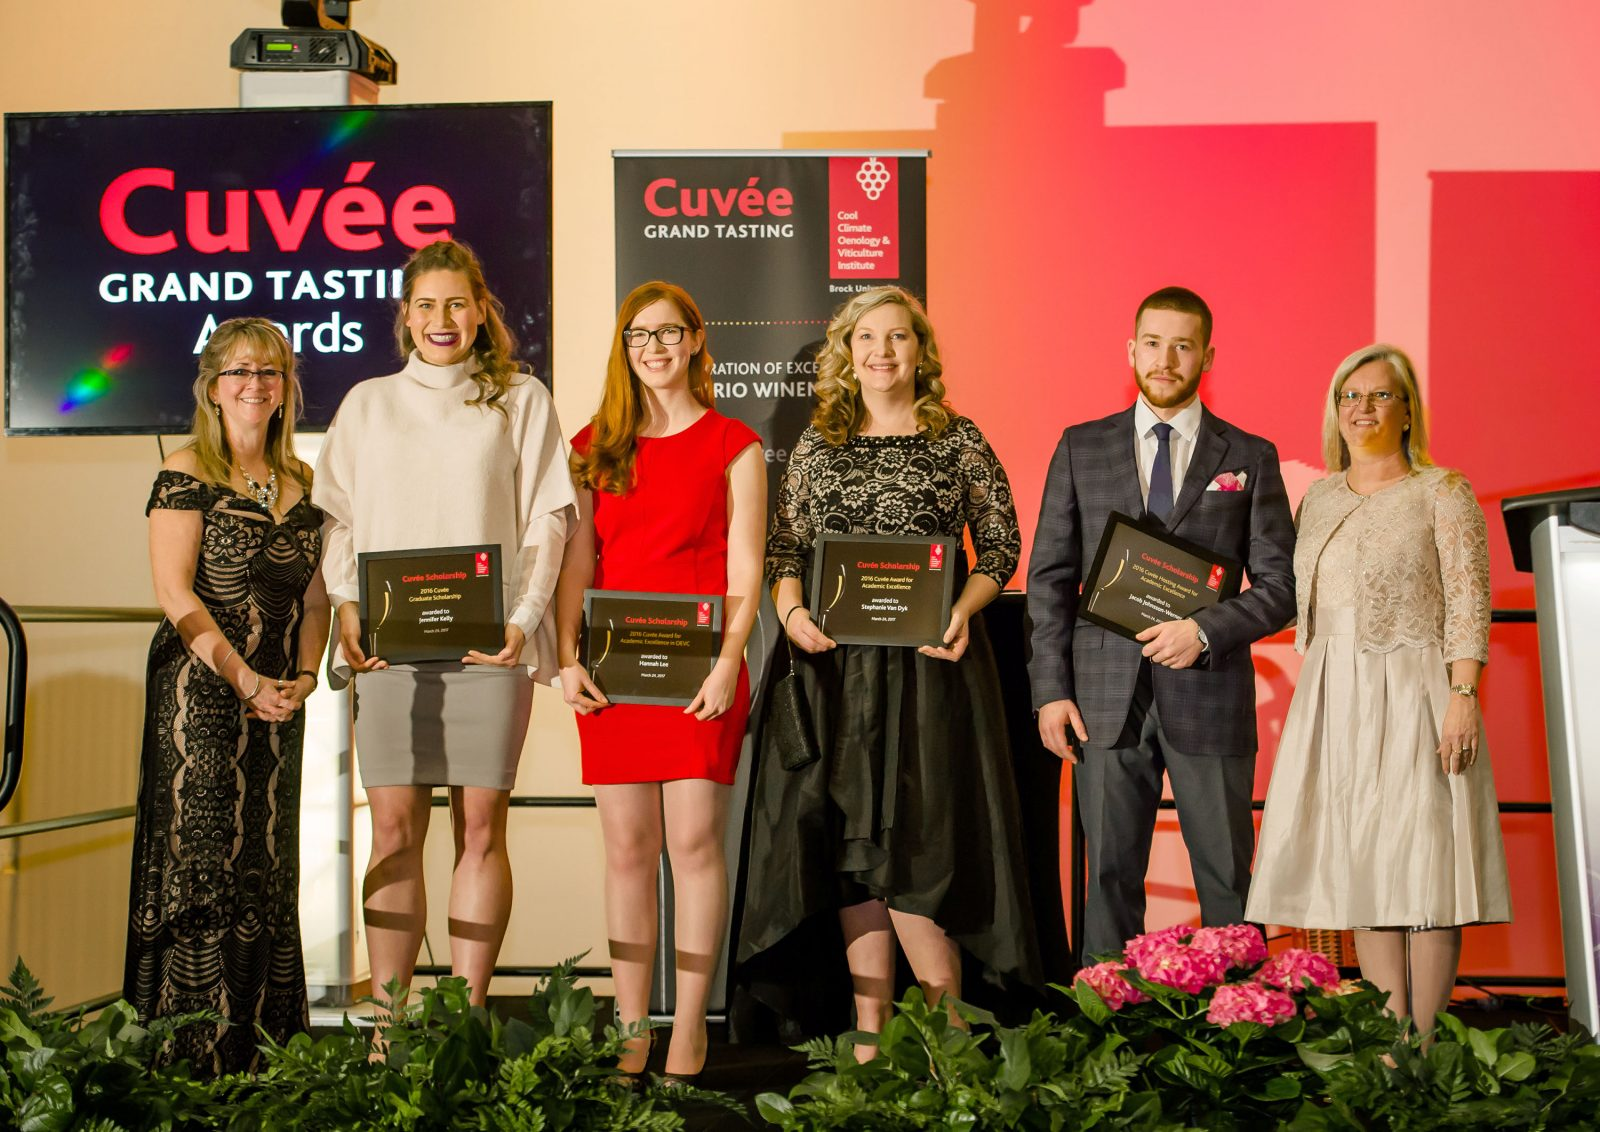 Cuvee award winners